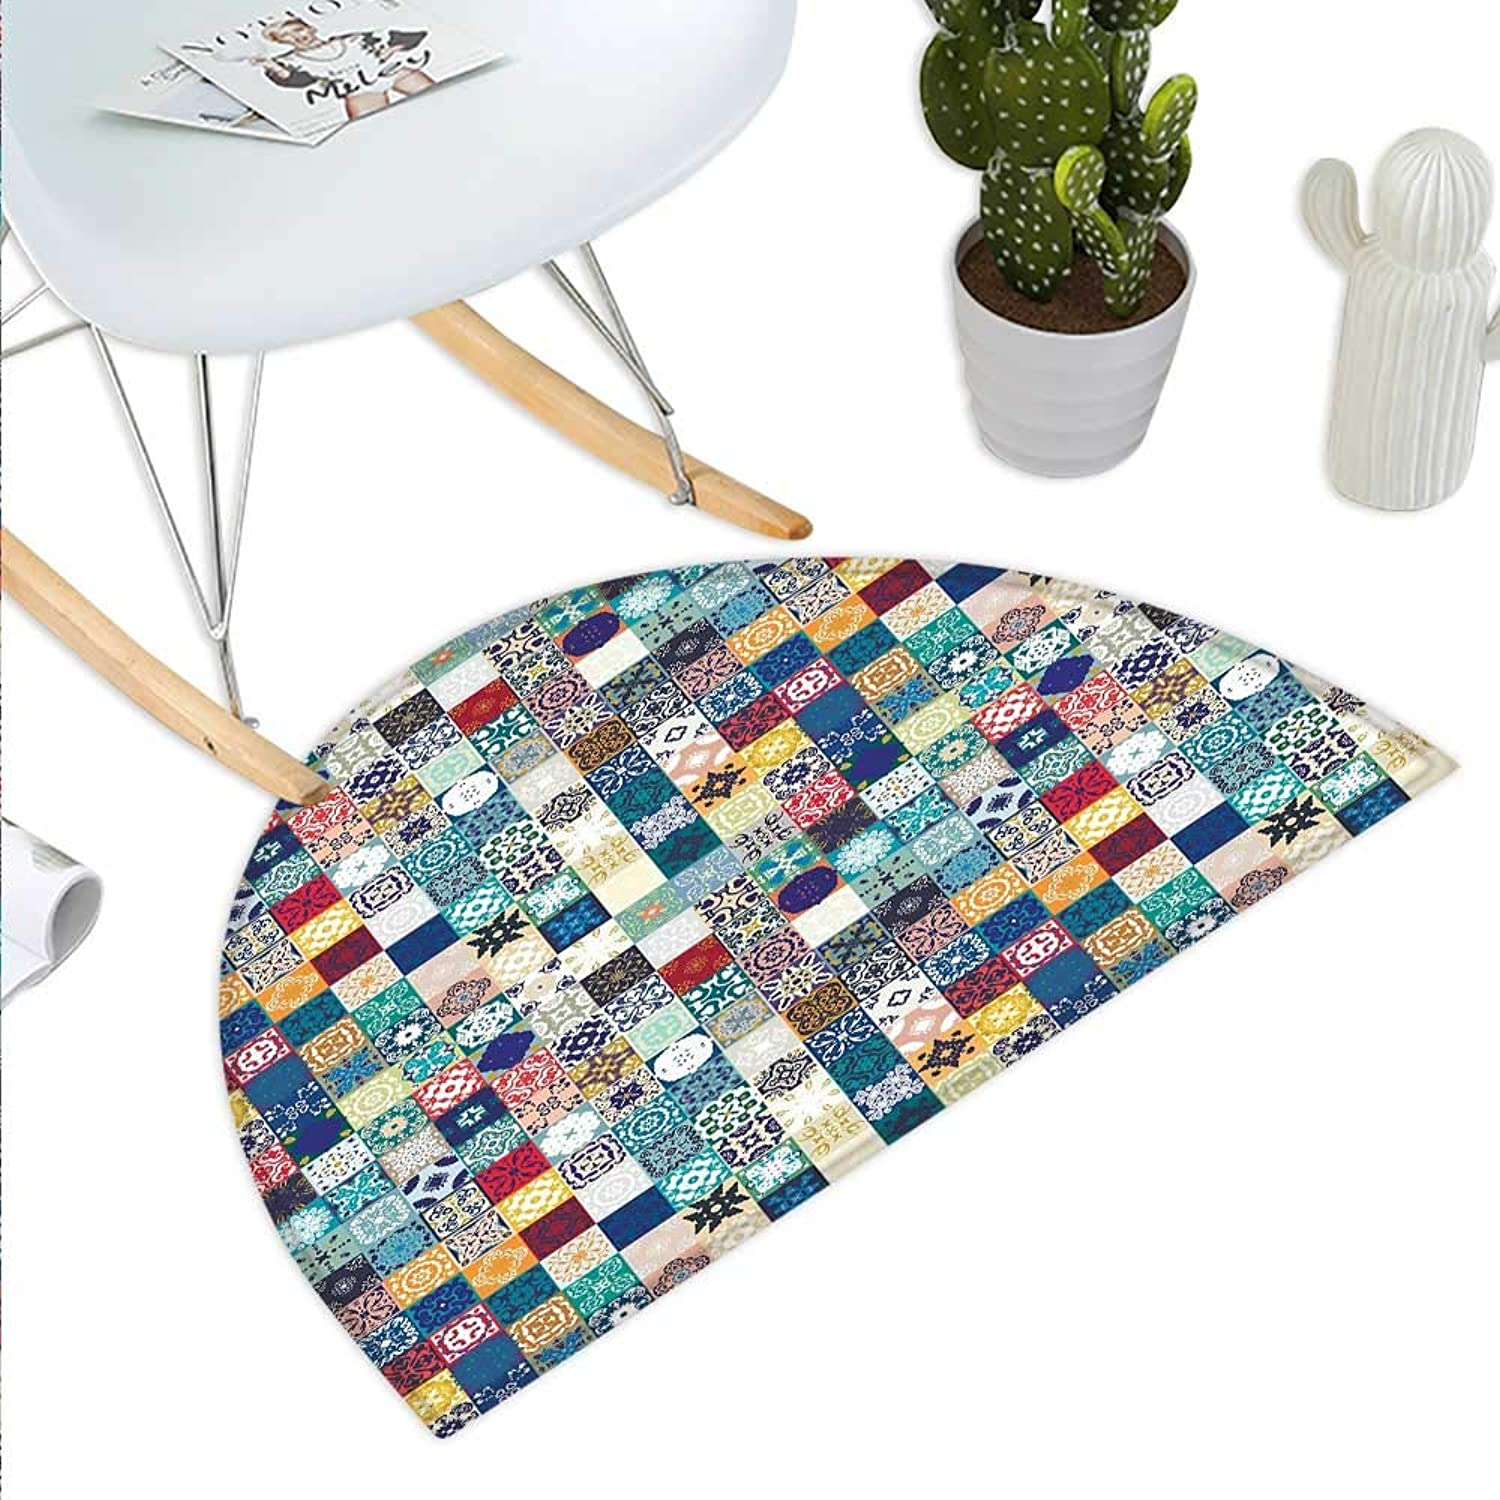 Mgoldccan Semicircle Doormat Oriental Eastern Pattern with Grid Style Patchwork Ornament Tiles Design Asian Halfmoon doormats H 43.3  xD 64.9  Multicolor